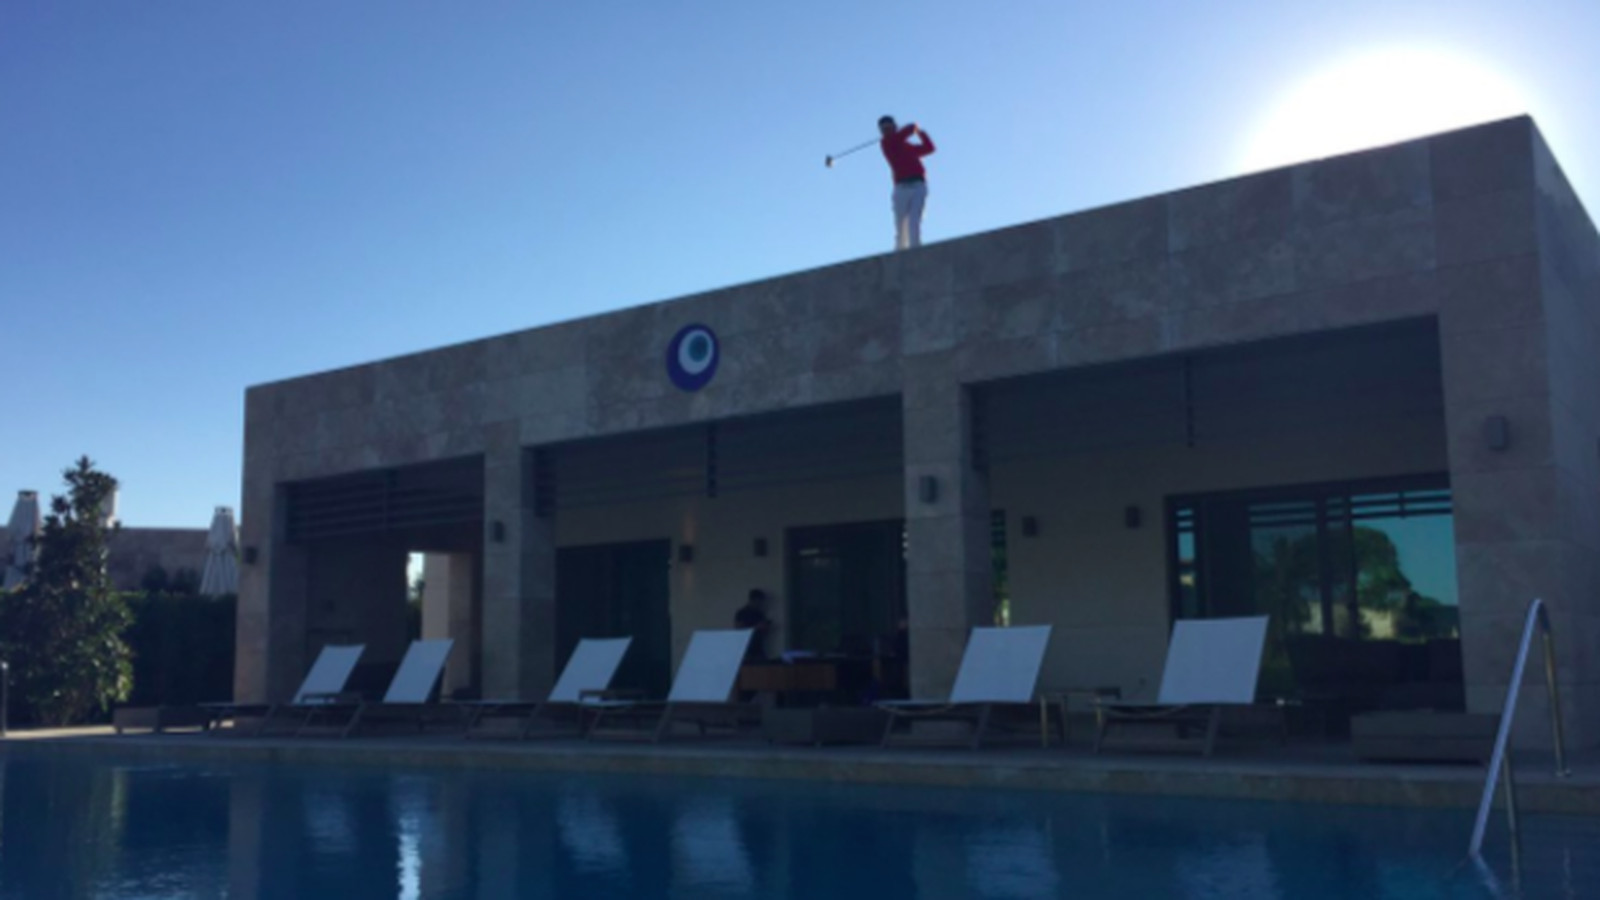 The European Tour Set Up A Rooftop Tee Box At The Turkish